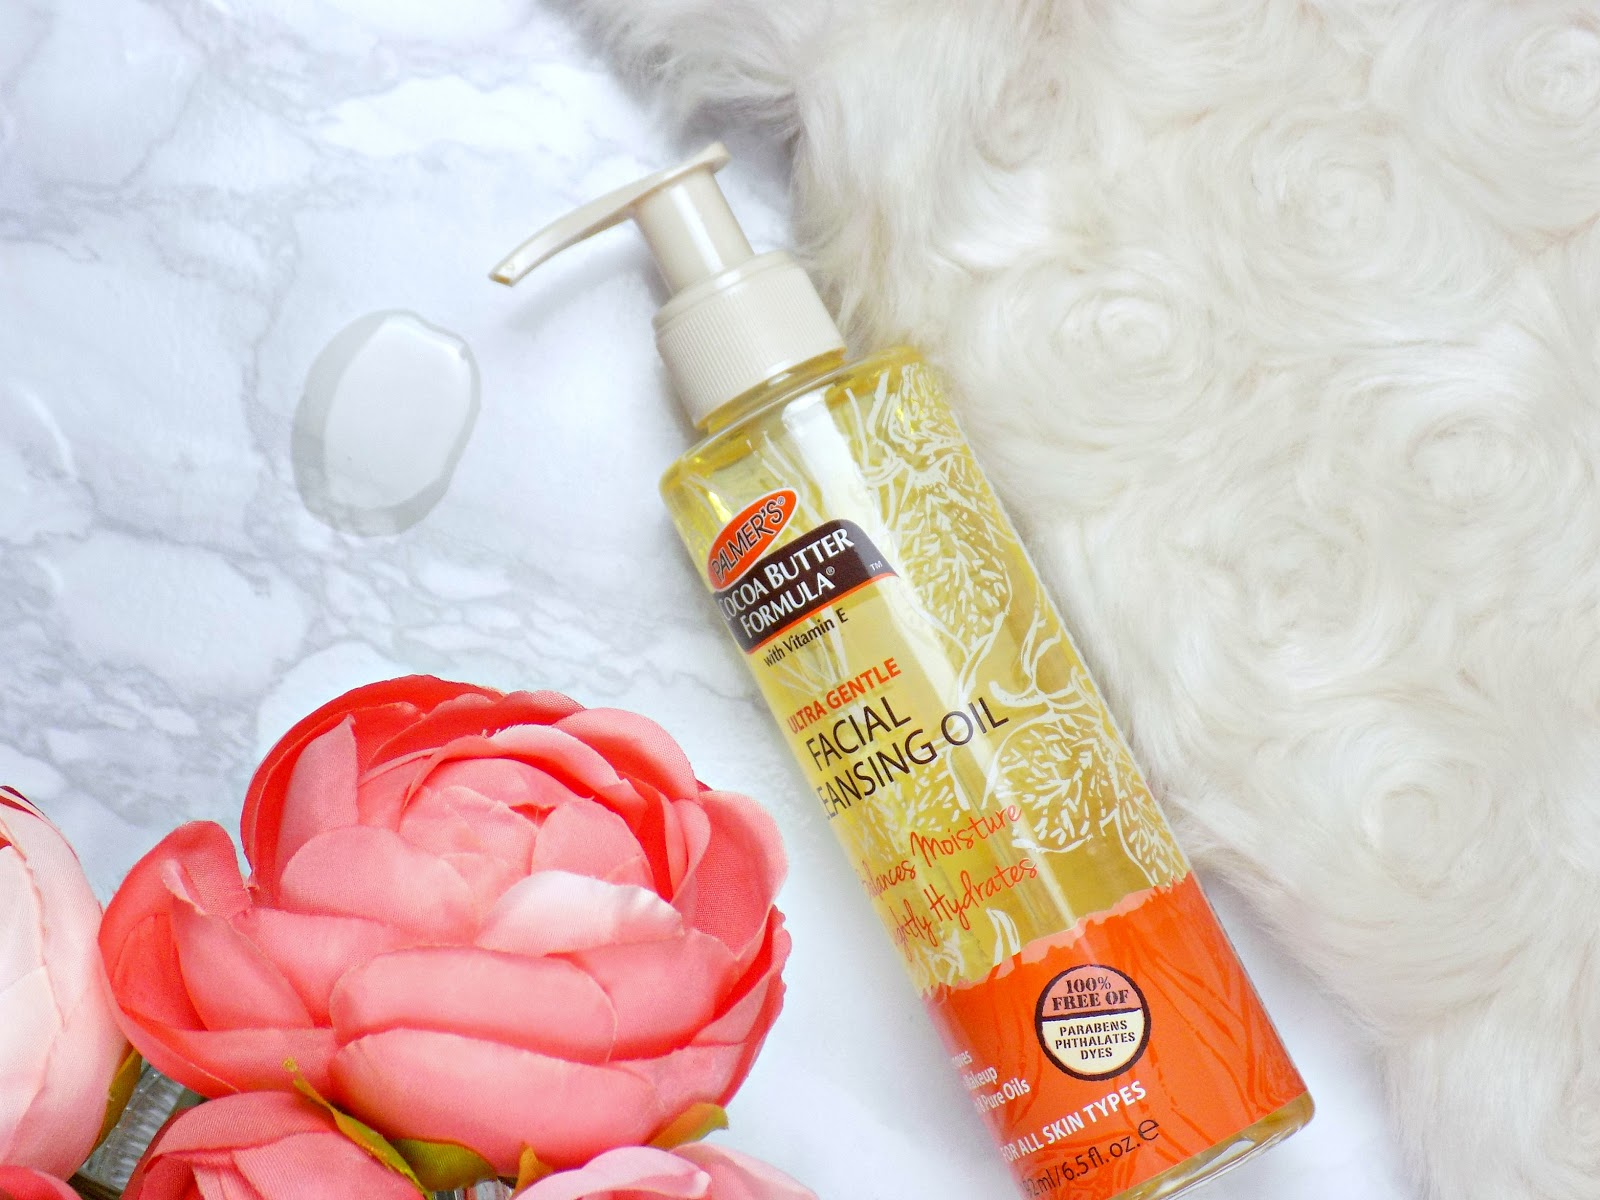 Palmer's Facial Cleansing Oil